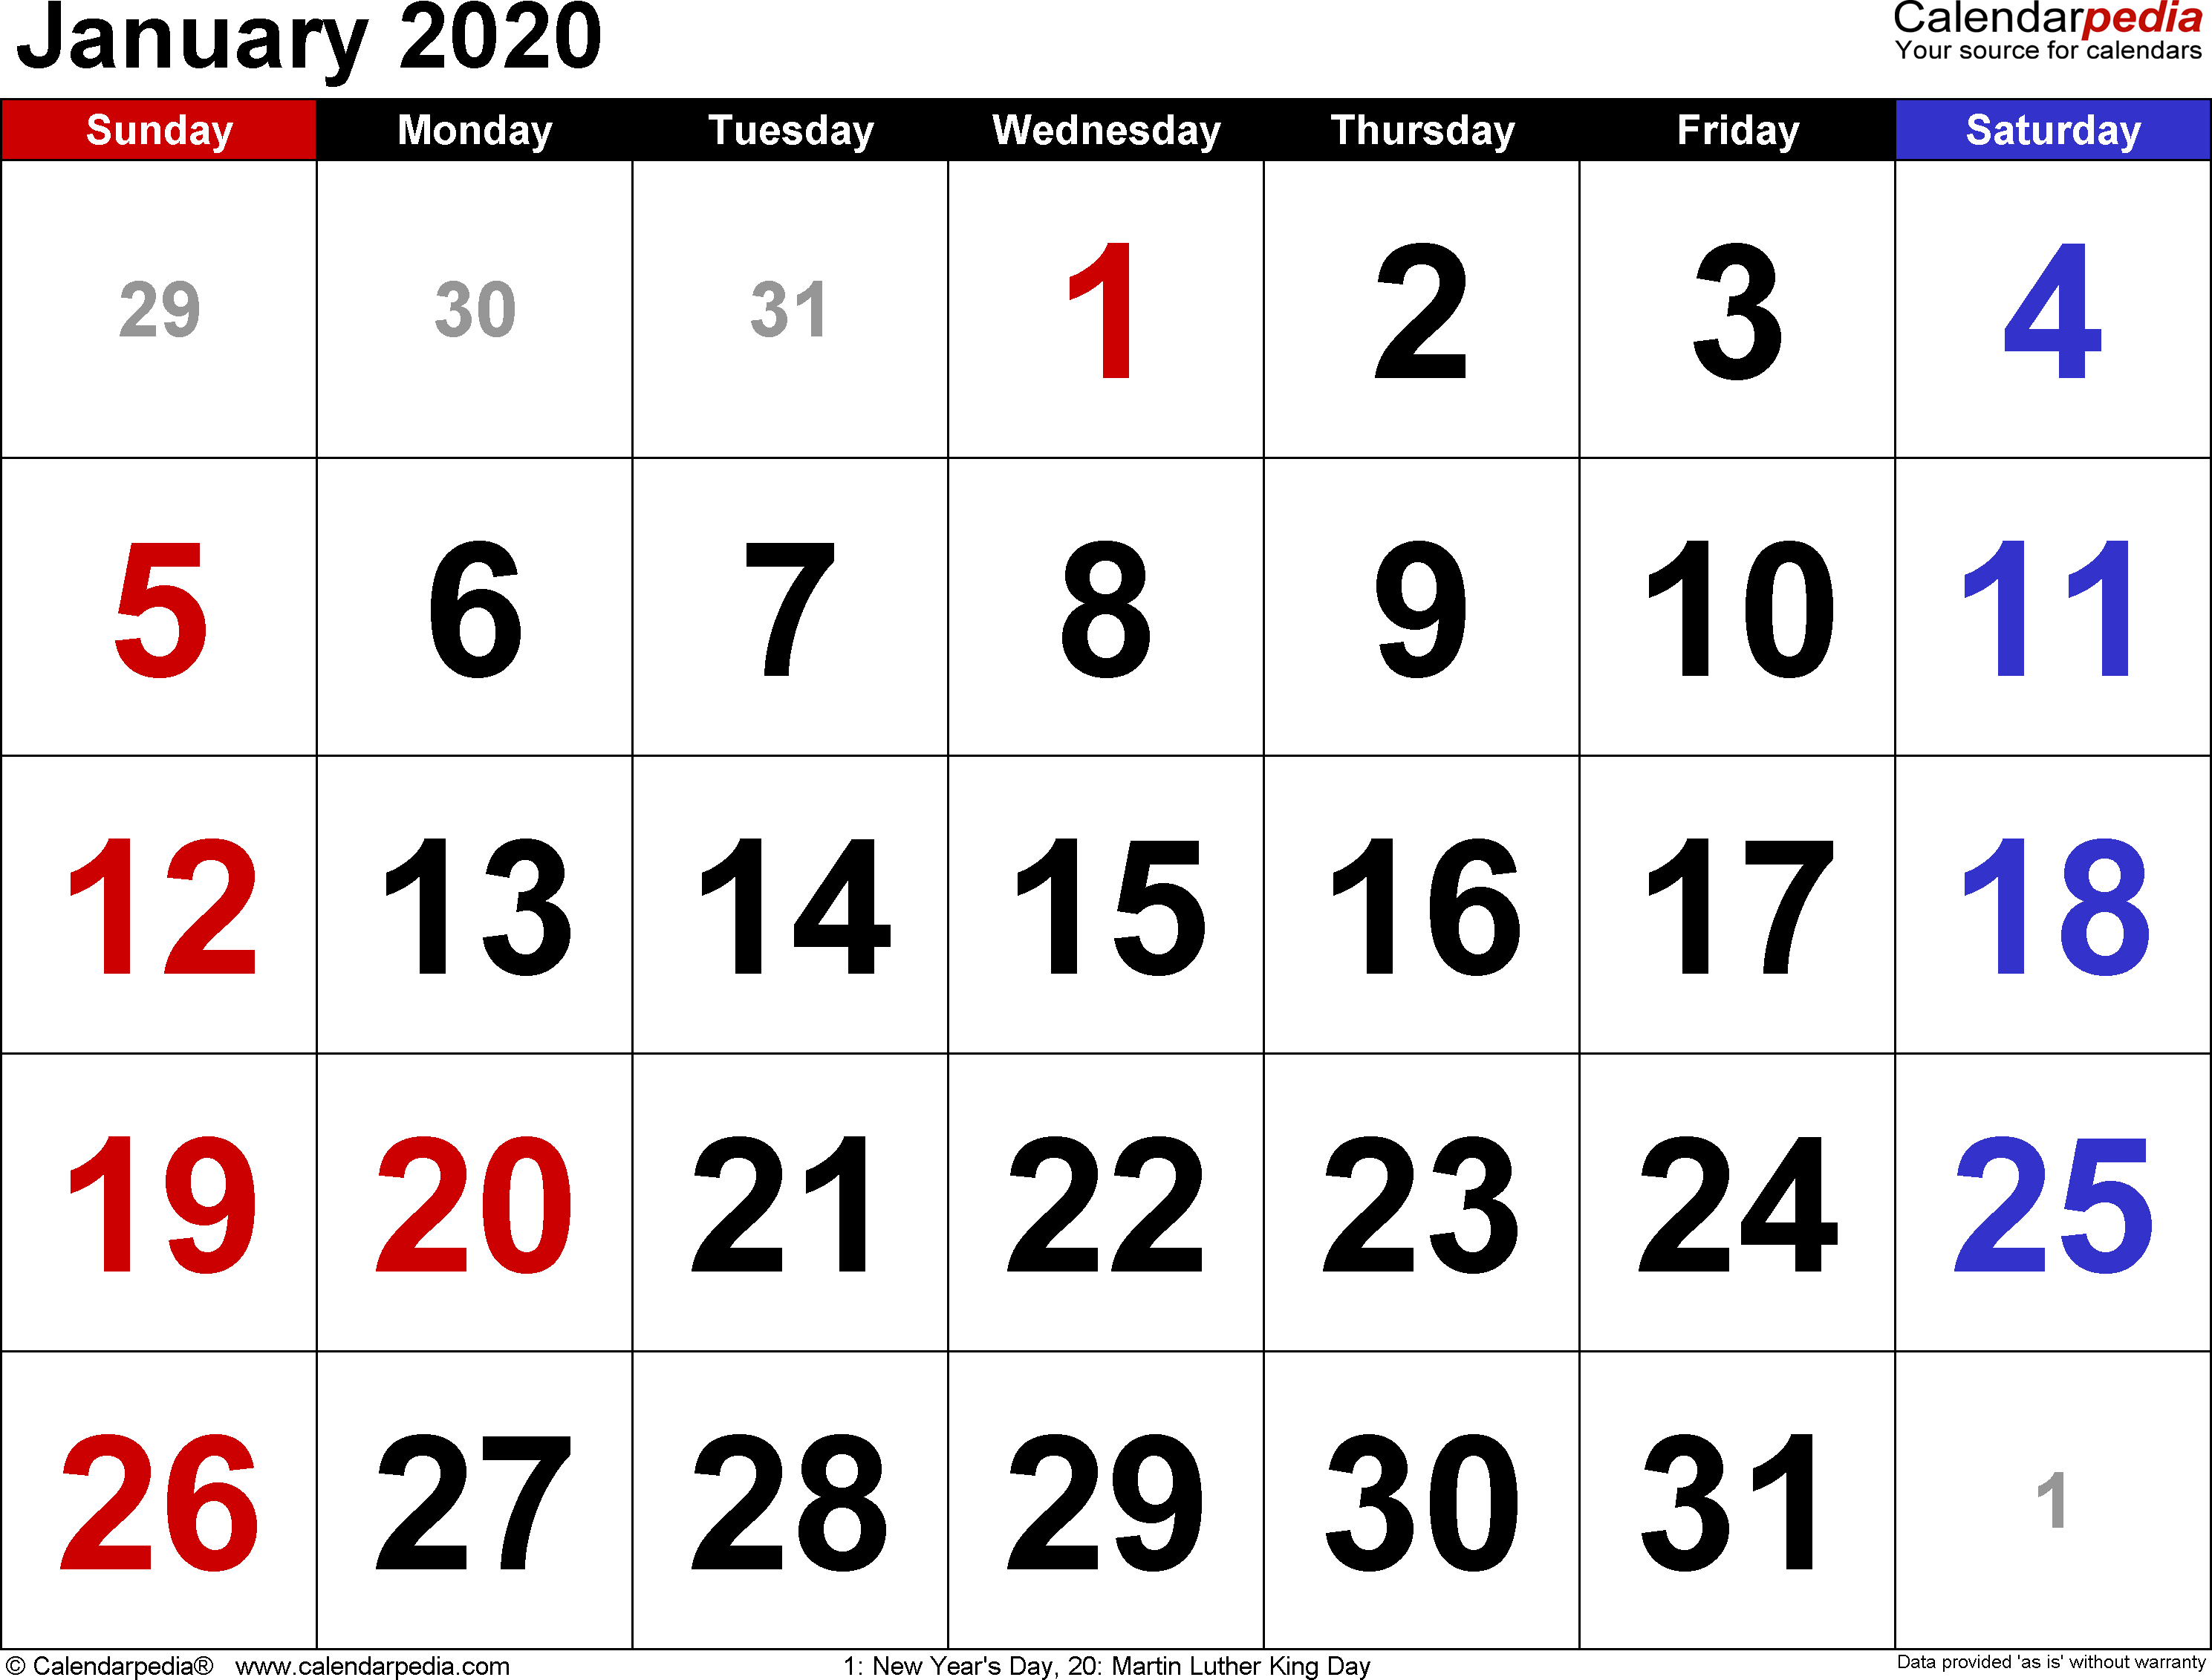 January 2020  Calendar Templates For Word, Excel And Pdf with Calendarpedia January 2020